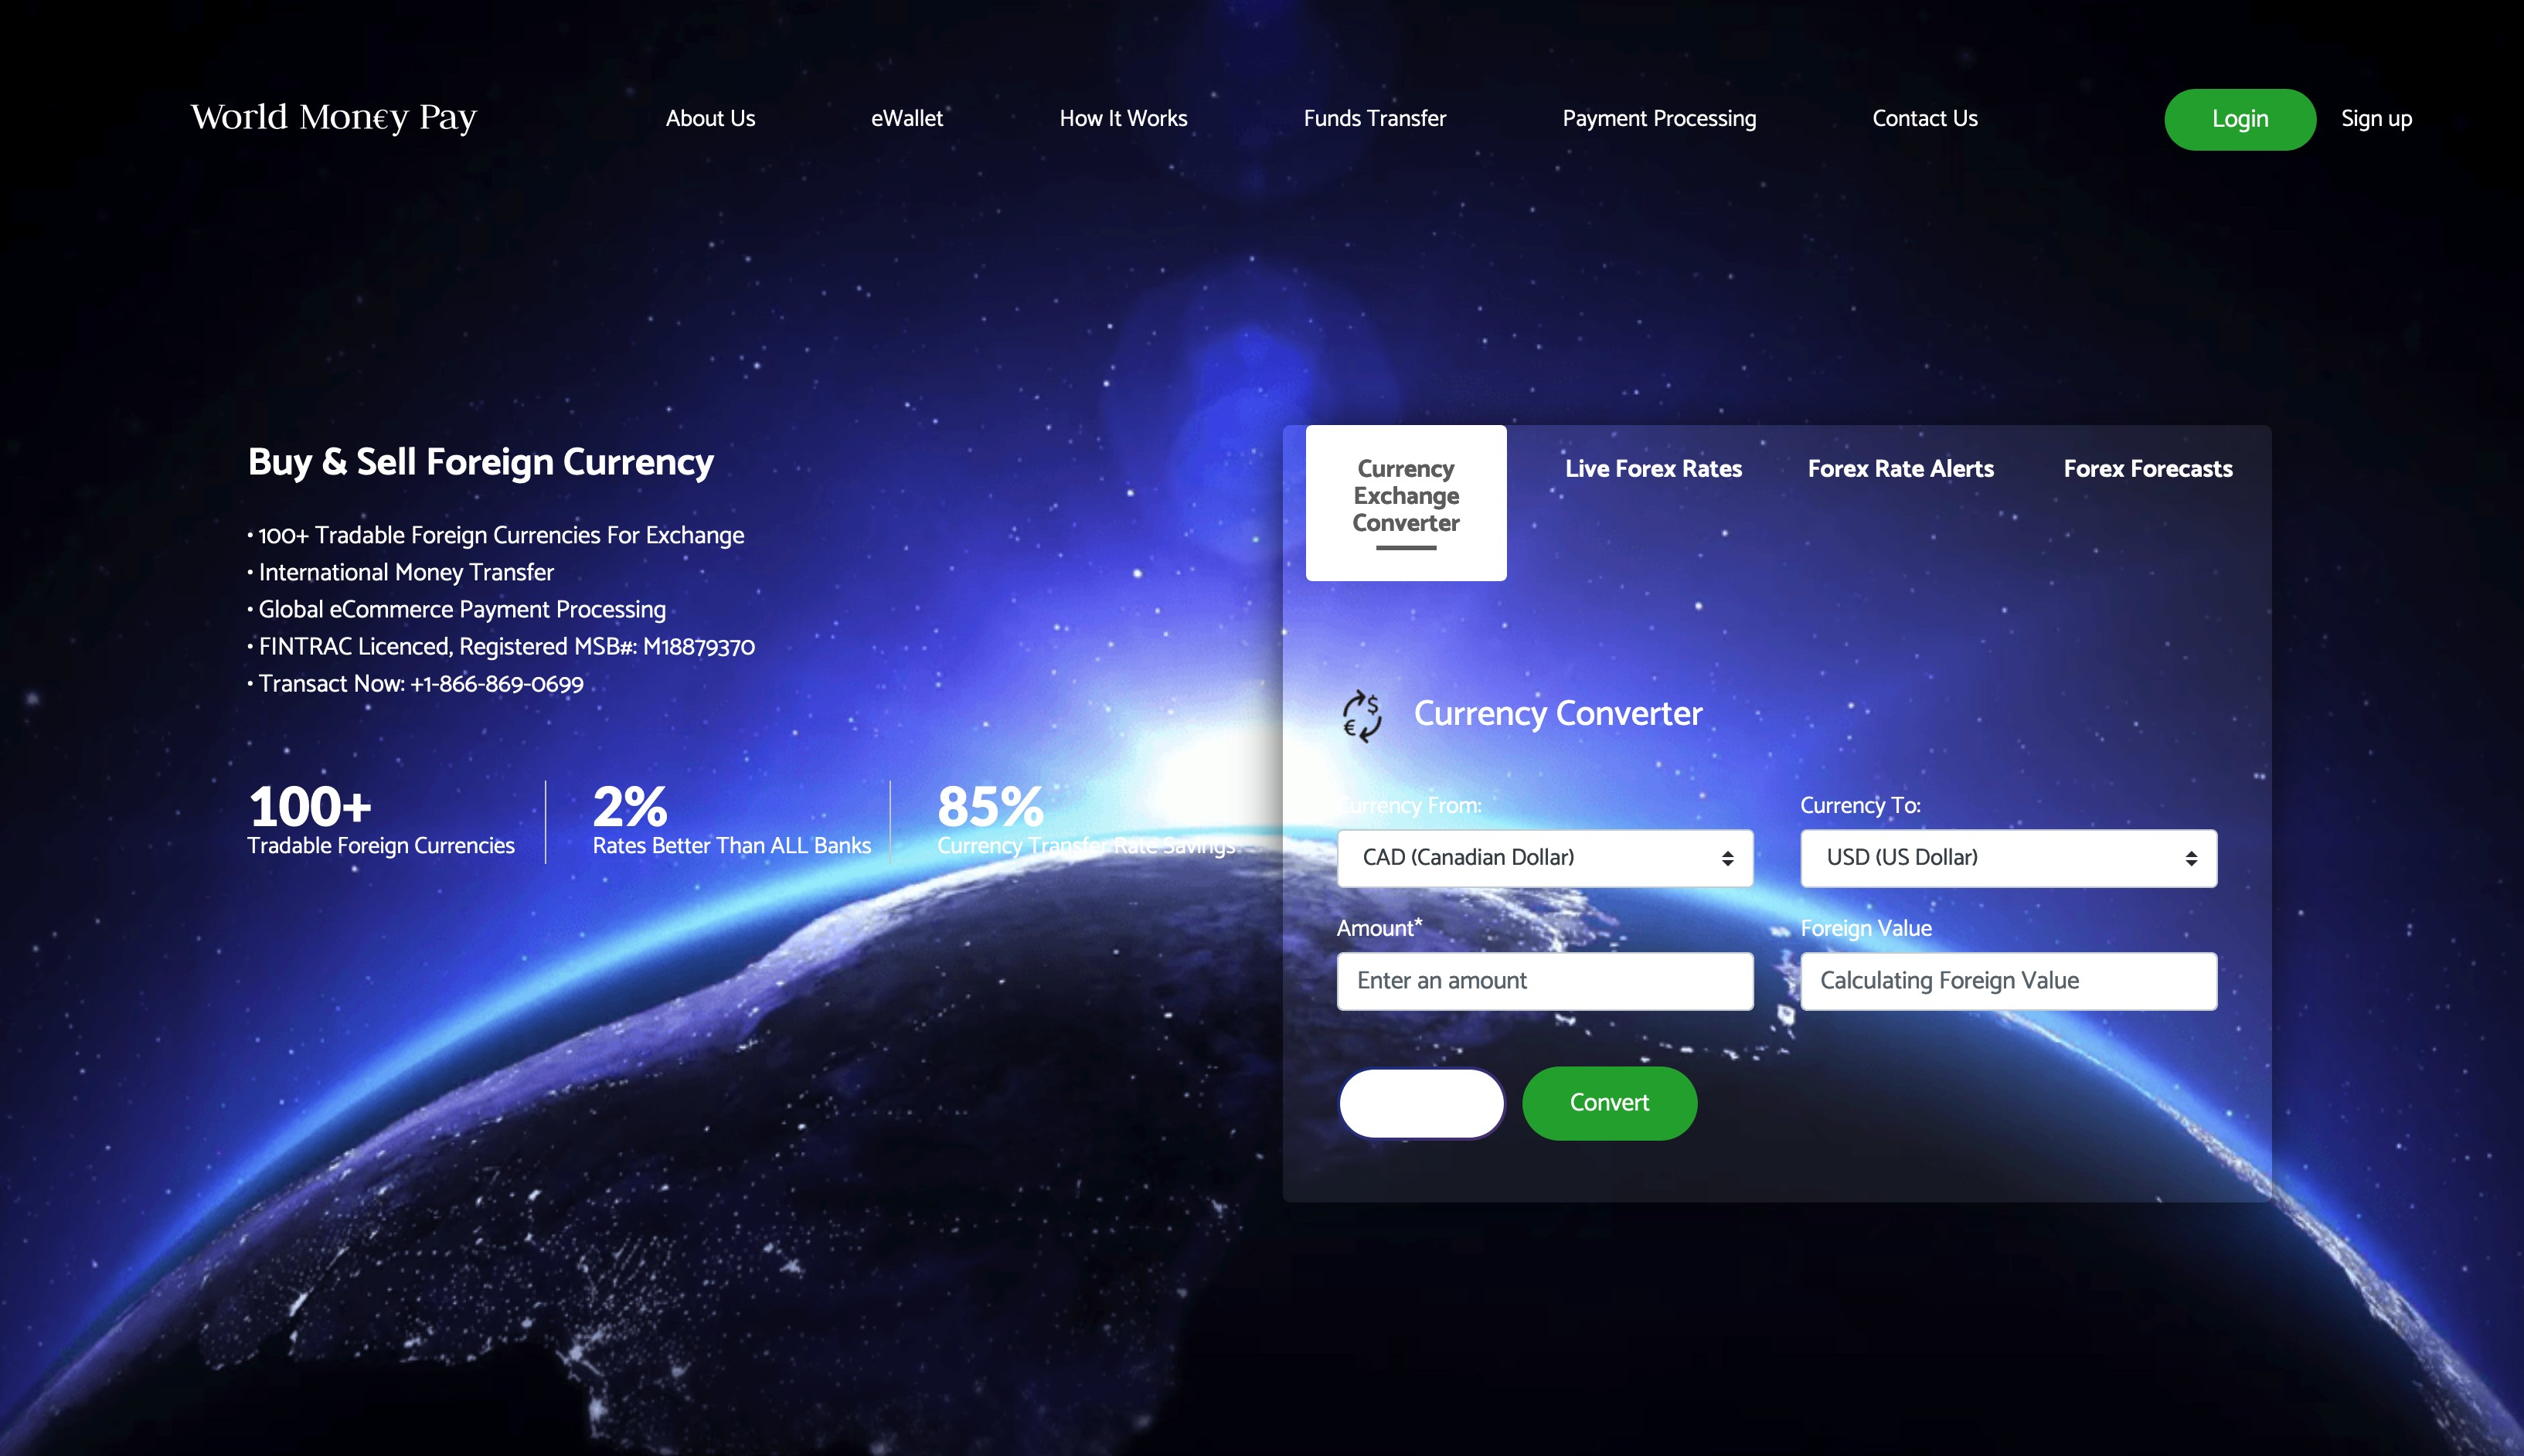 World Money Pay Foreign Exchange